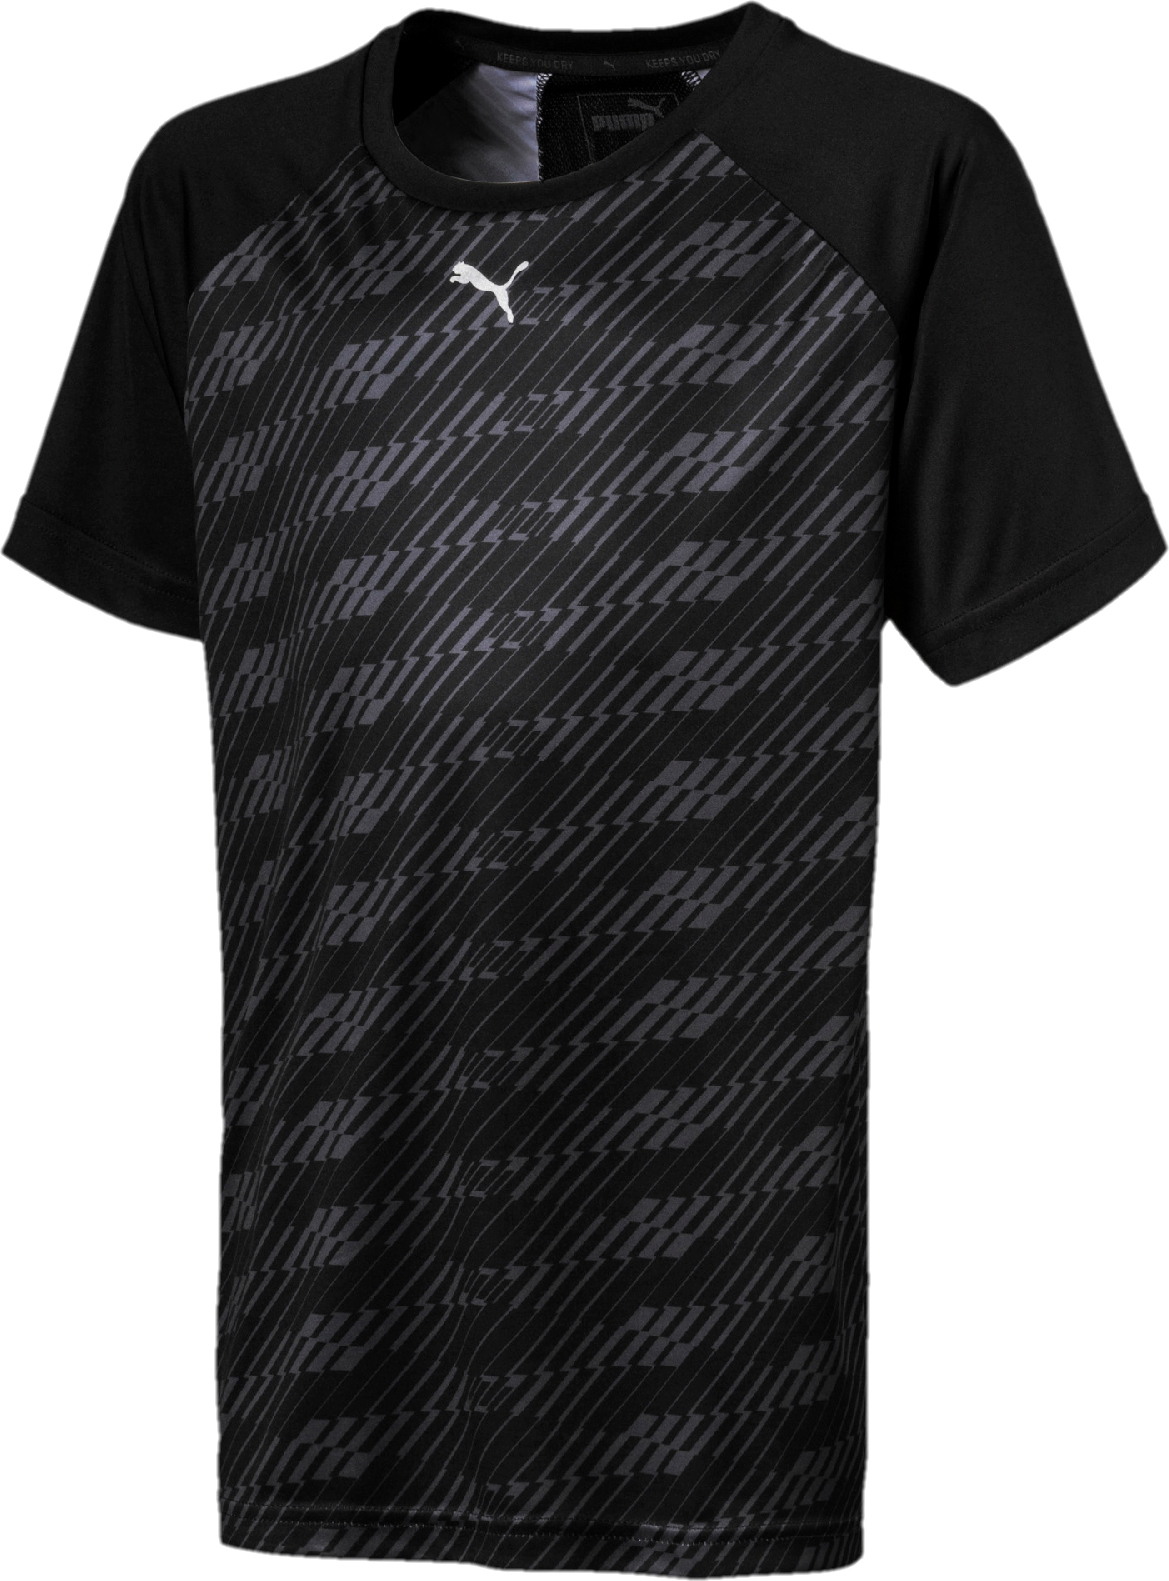 Футболка PUMA Gym Graphic AOP Tee B футболка puma футболка softsport graphic layer tee